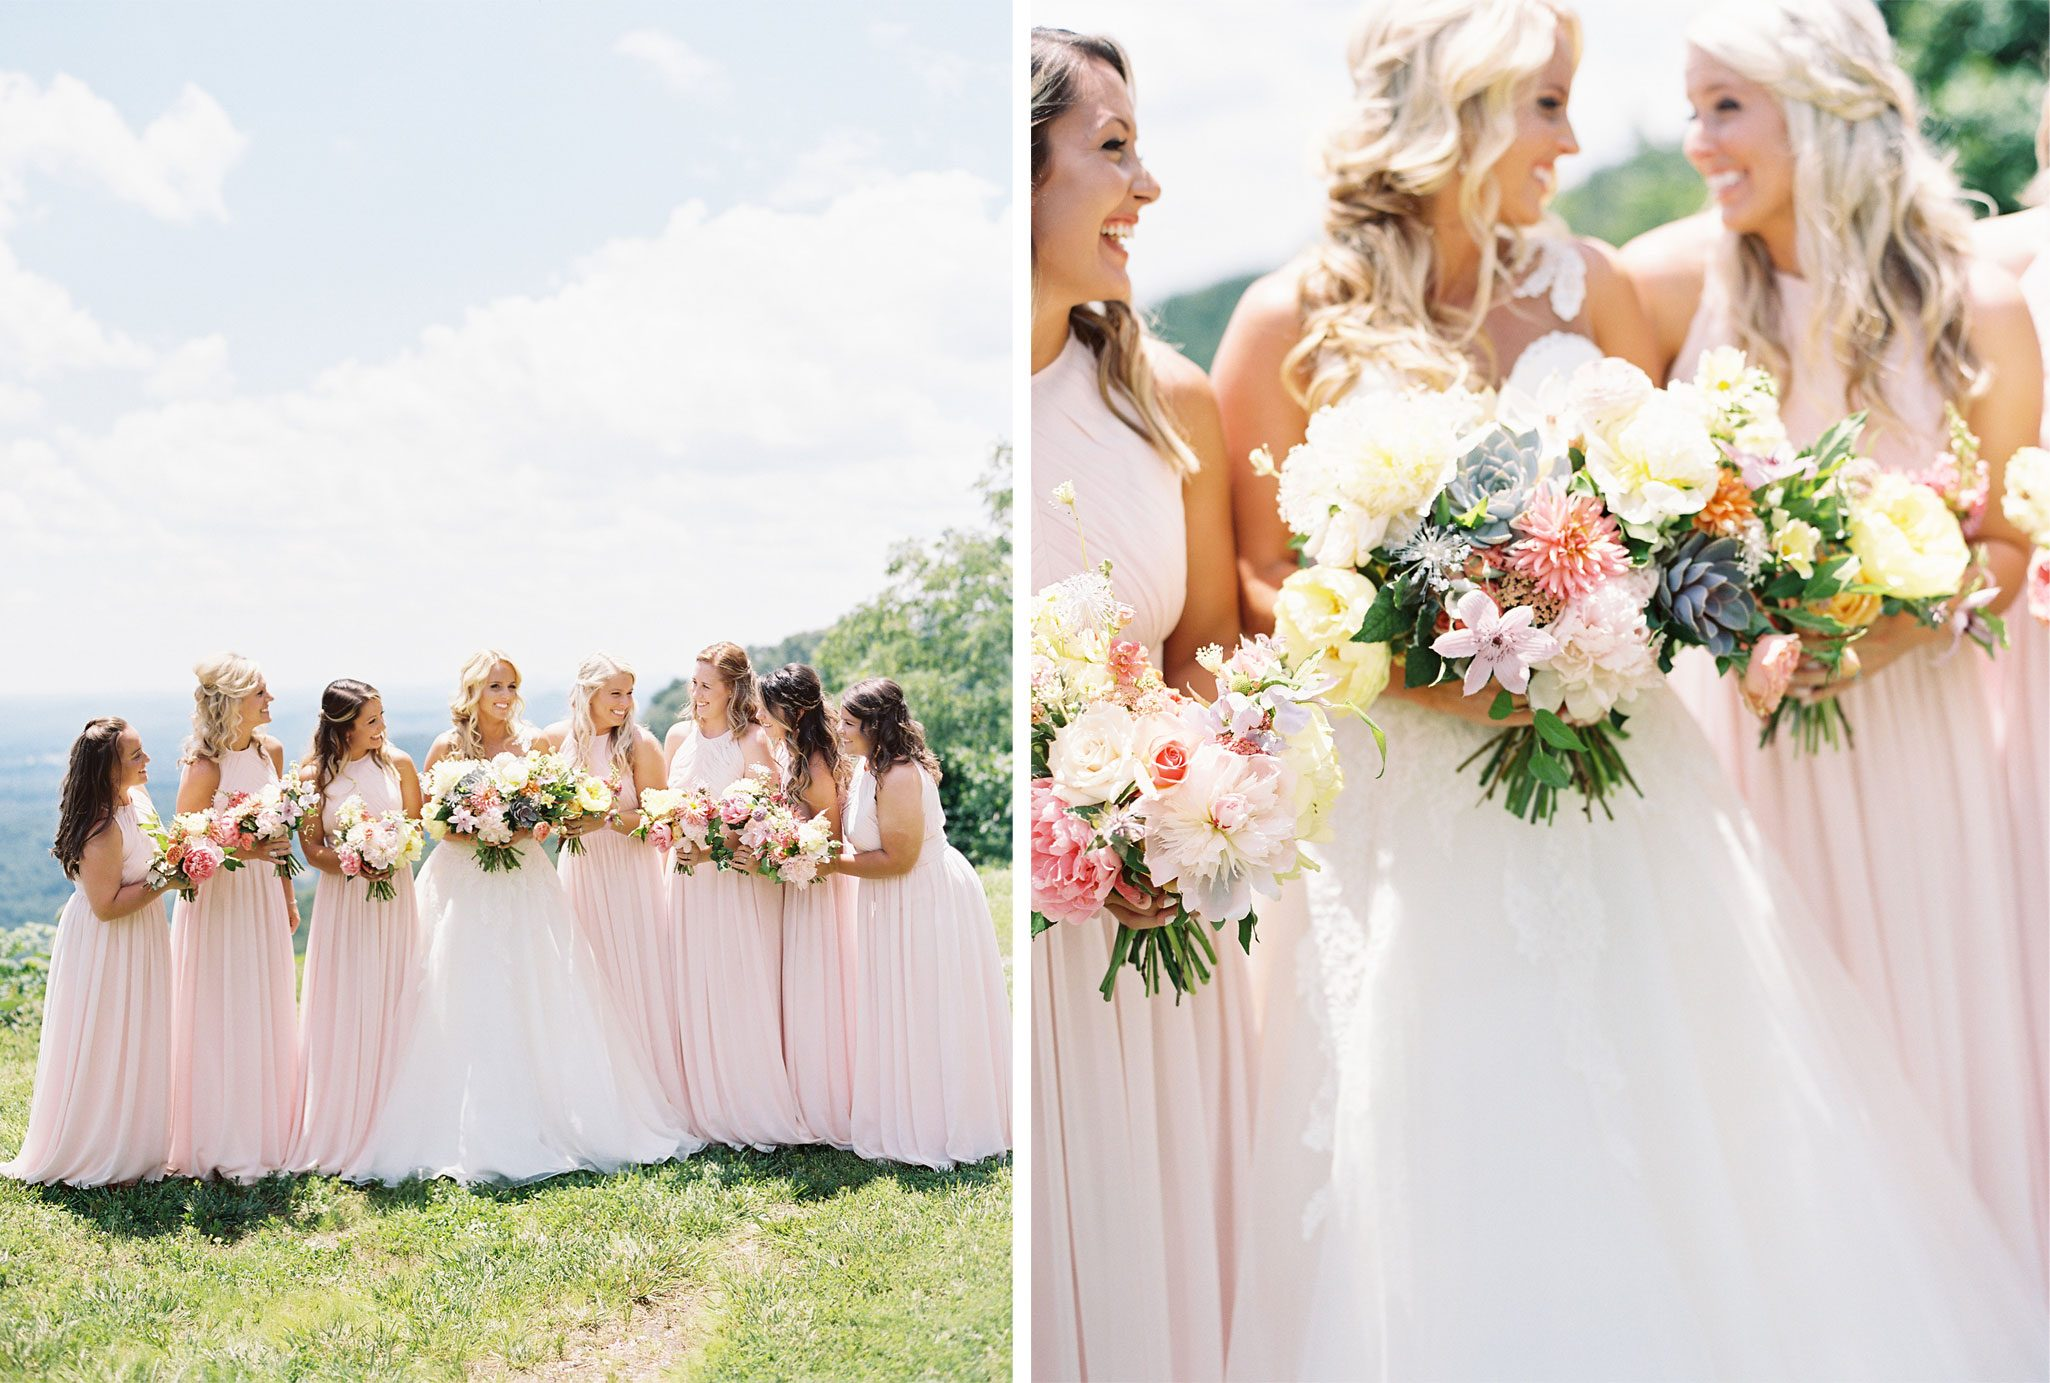 Bridesmaids | A Blue Ridge Mountain Wedding in South Carolina